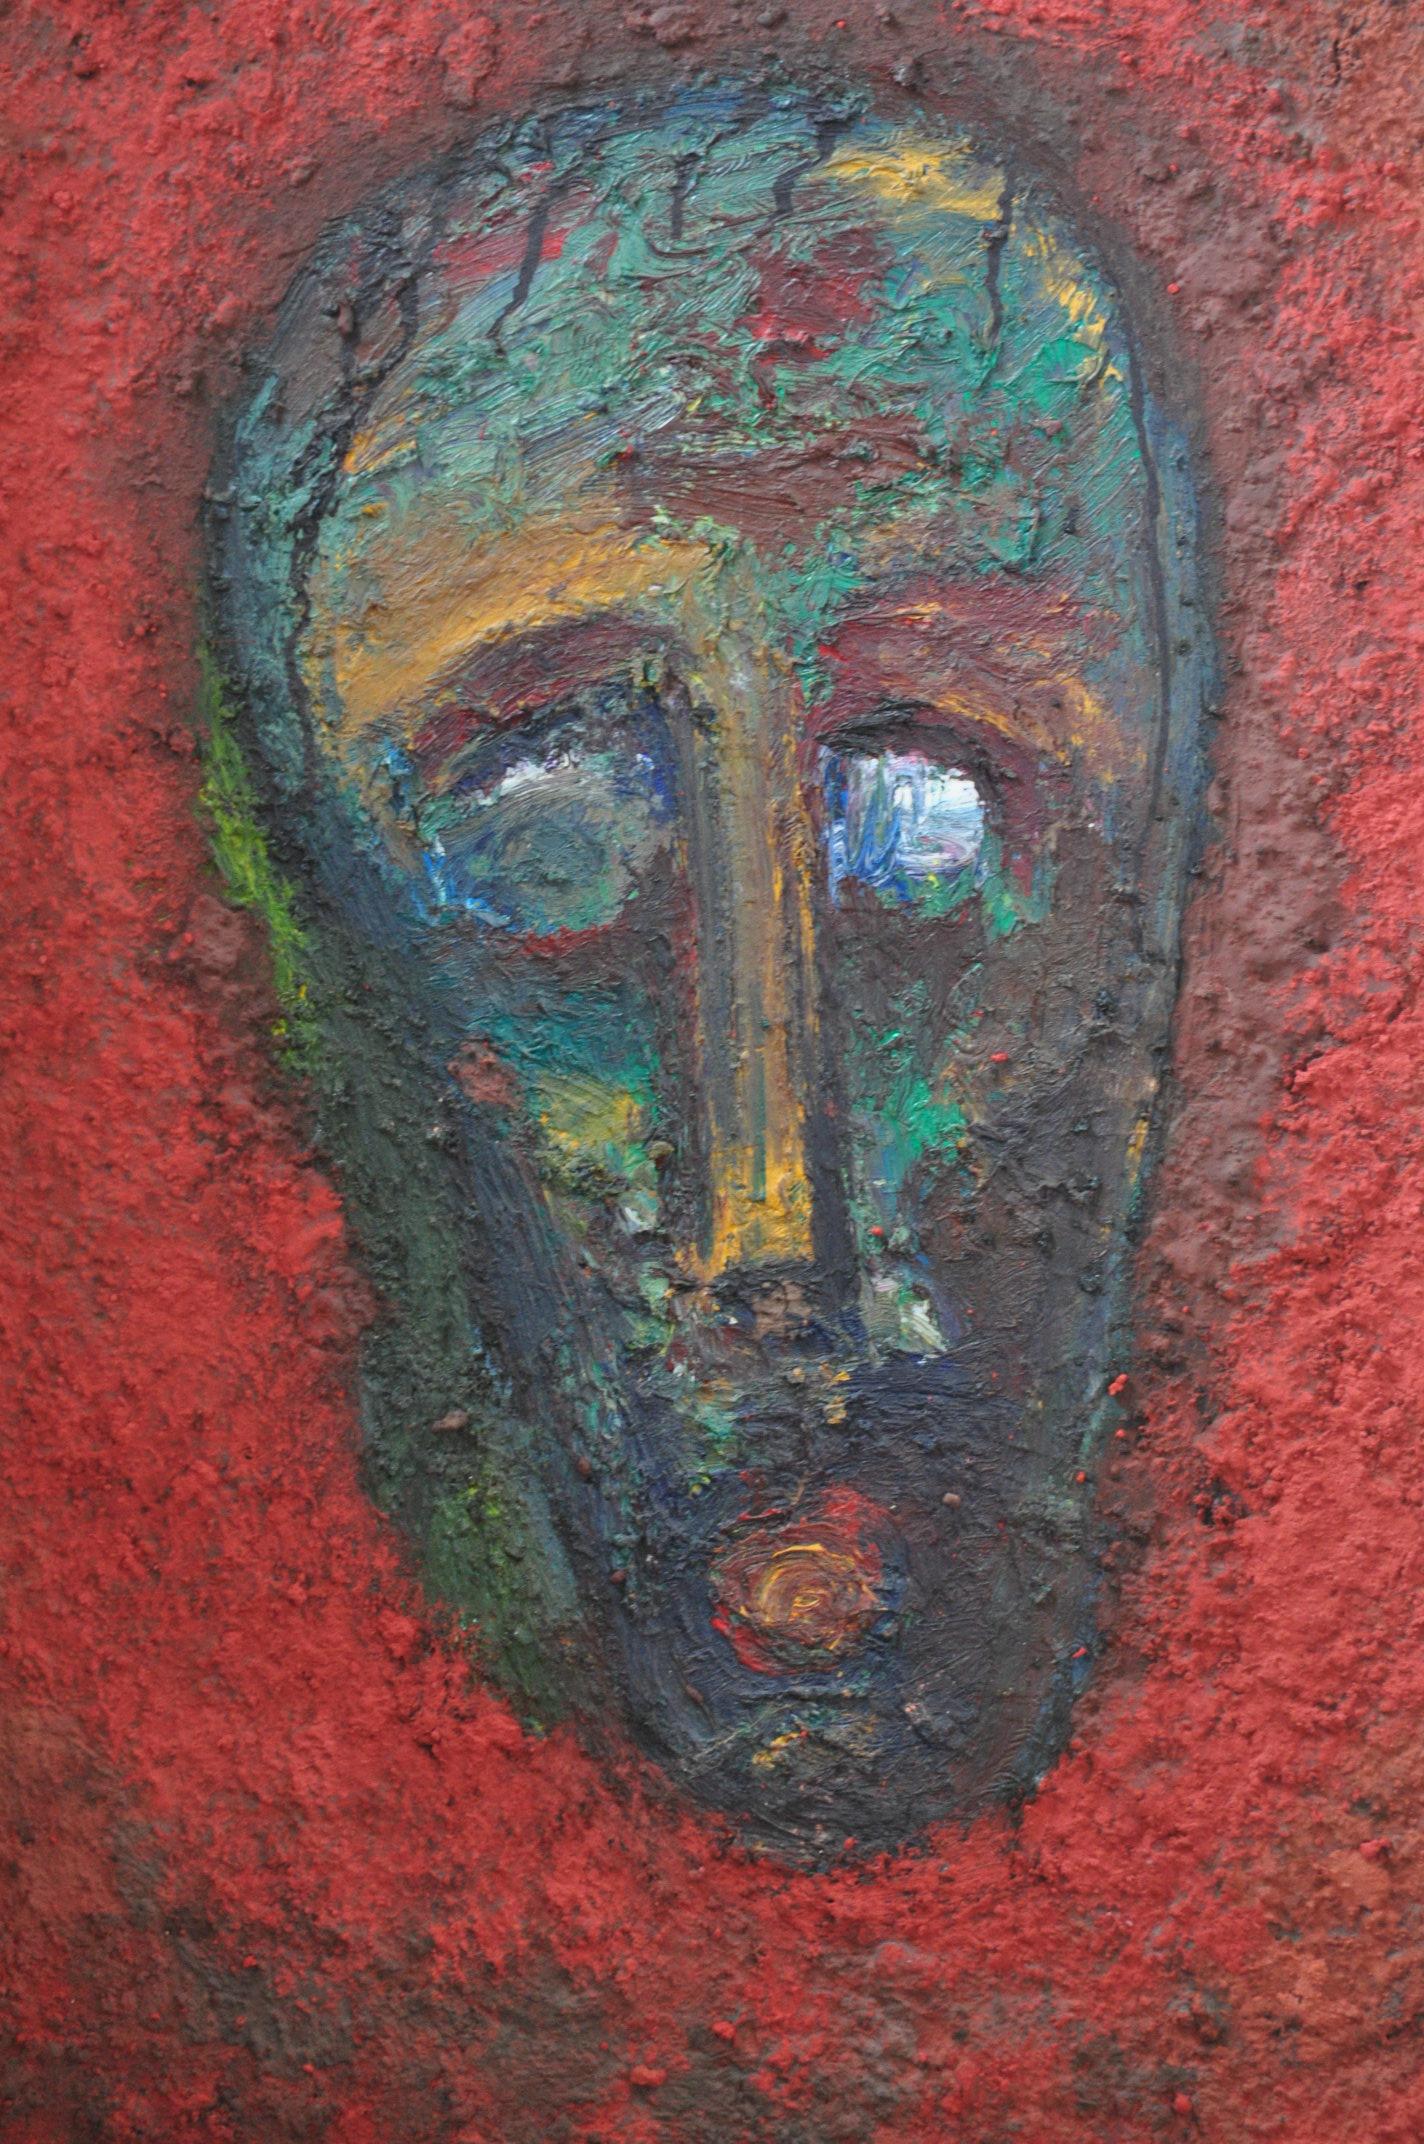 """Forgotten Man 1989- 2014  He took part in many other group shows including  The London Group  tour 1987;  Celtic Vision Tour  1986/1987/1988. Modern Irish Painting,  Dillon Gallery , 1995; and  Skopje Museum of Contemporary Art , Republic of Macedonia, 1996.  Art Cosmopolis  RDS Dublin Ireland,  FÍS  2008/9 CUC Liverpool.  Kilkenny Arts Festival -Shankill Castle  2012 -  Gallery Different  –London 2012/13/14. Selected  """"What's the Point! """" London 2014.. Selected  """"MAC""""  Belfast 2014. Selected  The Gallery Print Centre  – Gallery Opening London 2015 - Selected Finalist  Brisbane Art Prize  2015."""